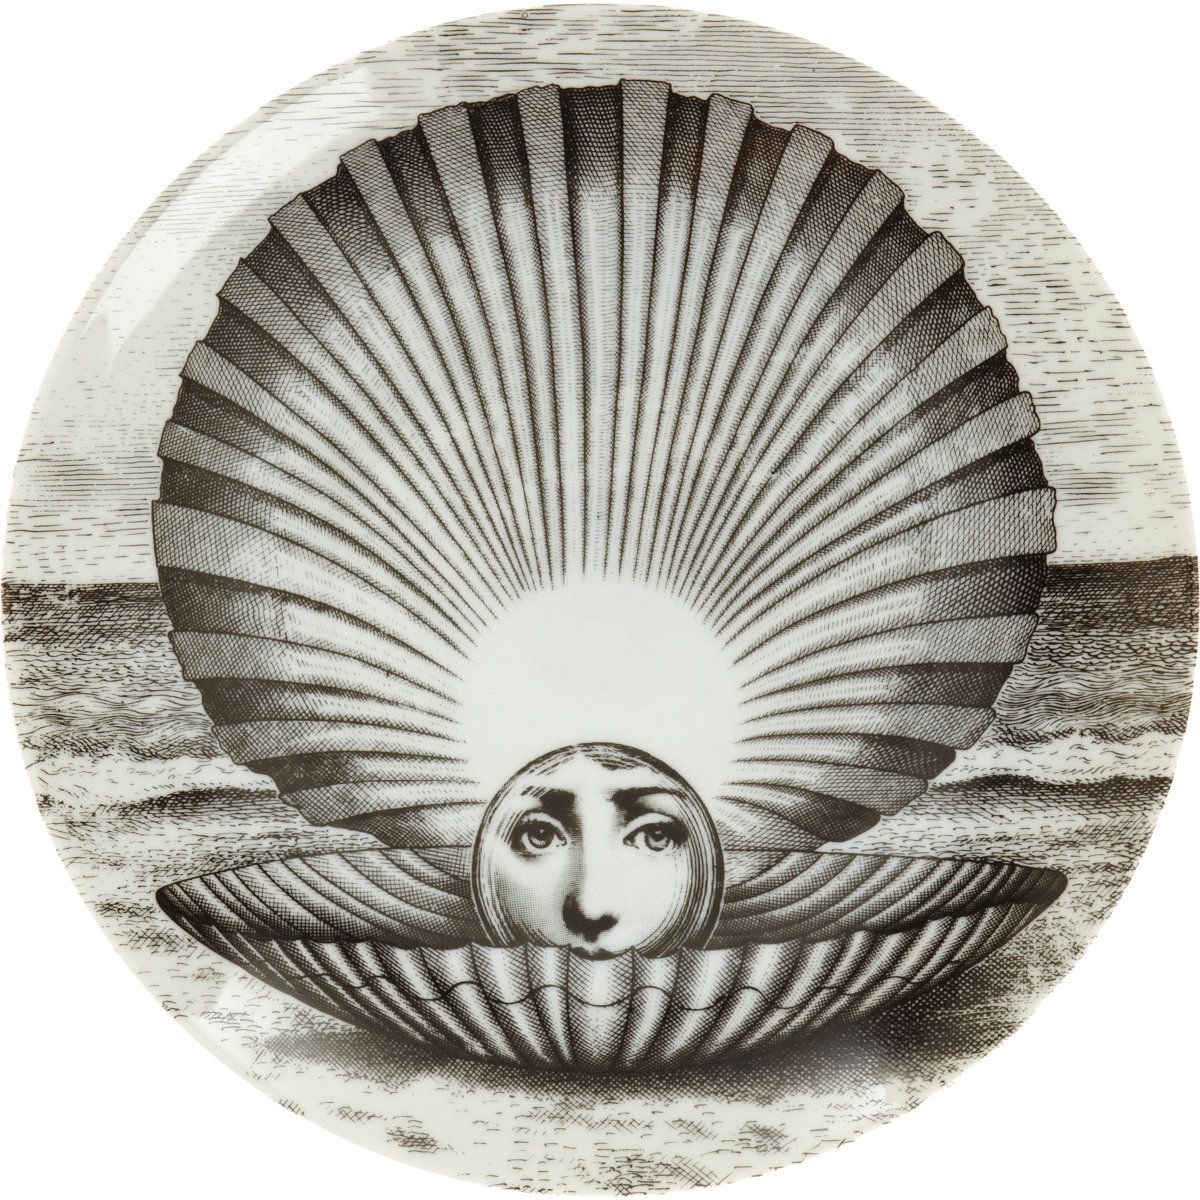 Fornasetti Theme And Variation Plate No 274 By Piero Fornasetti